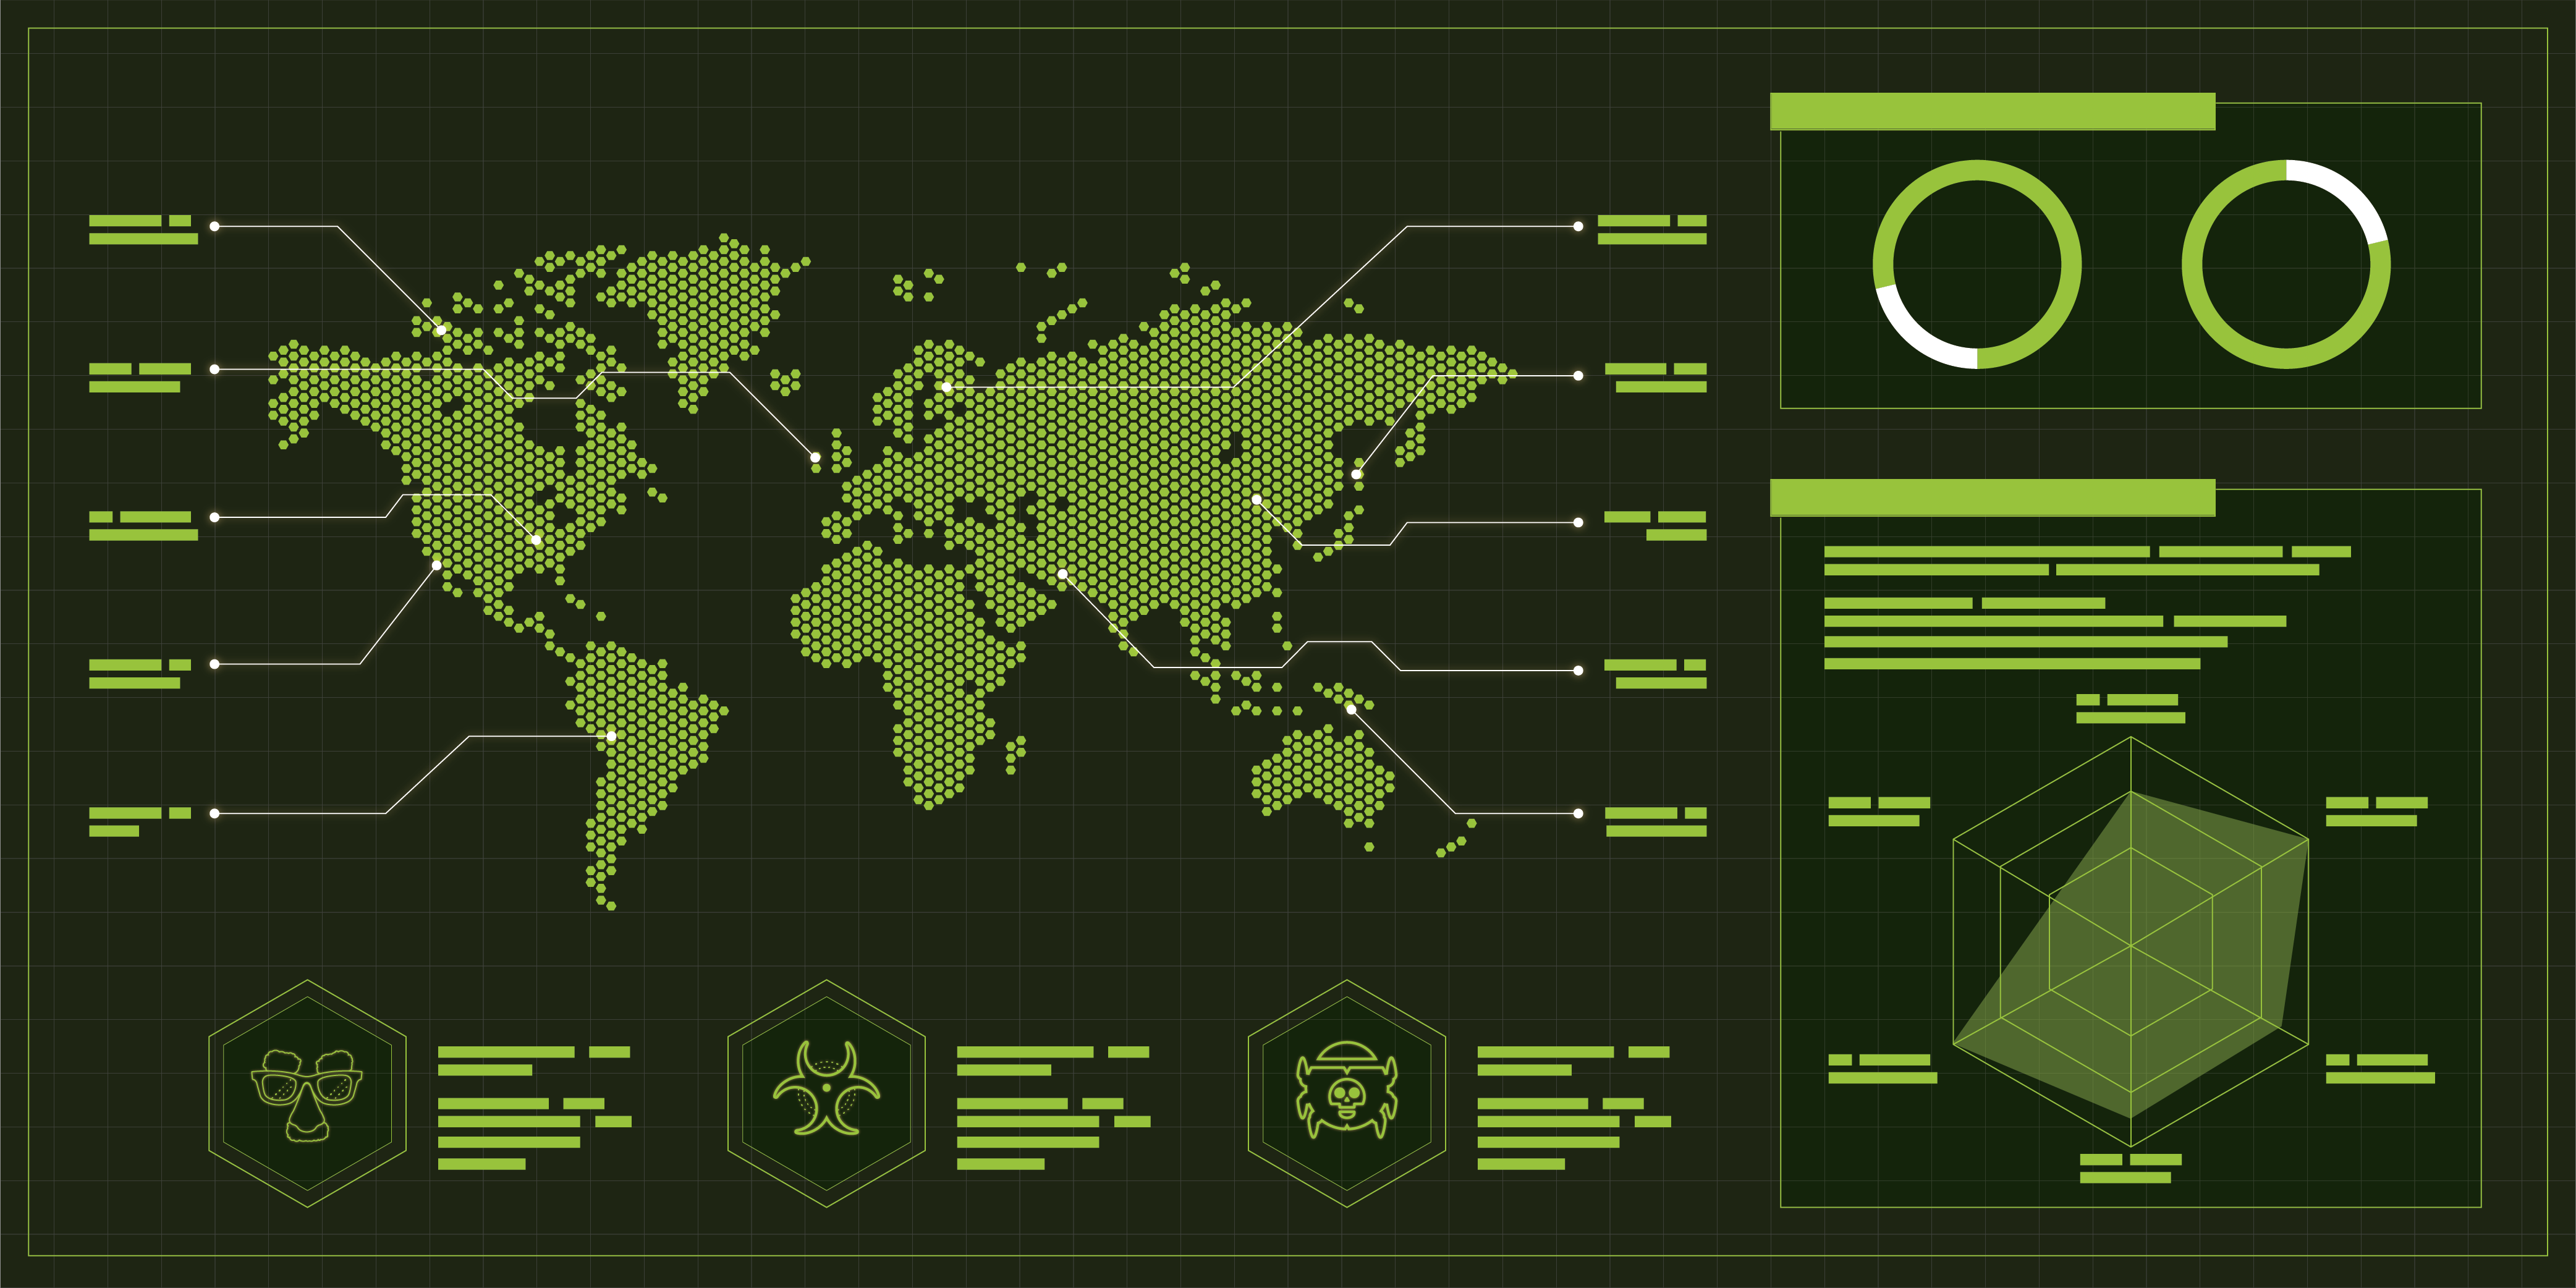 A conceptual illustration showing a world map along with icons representing malware and other tools used by malicious actors